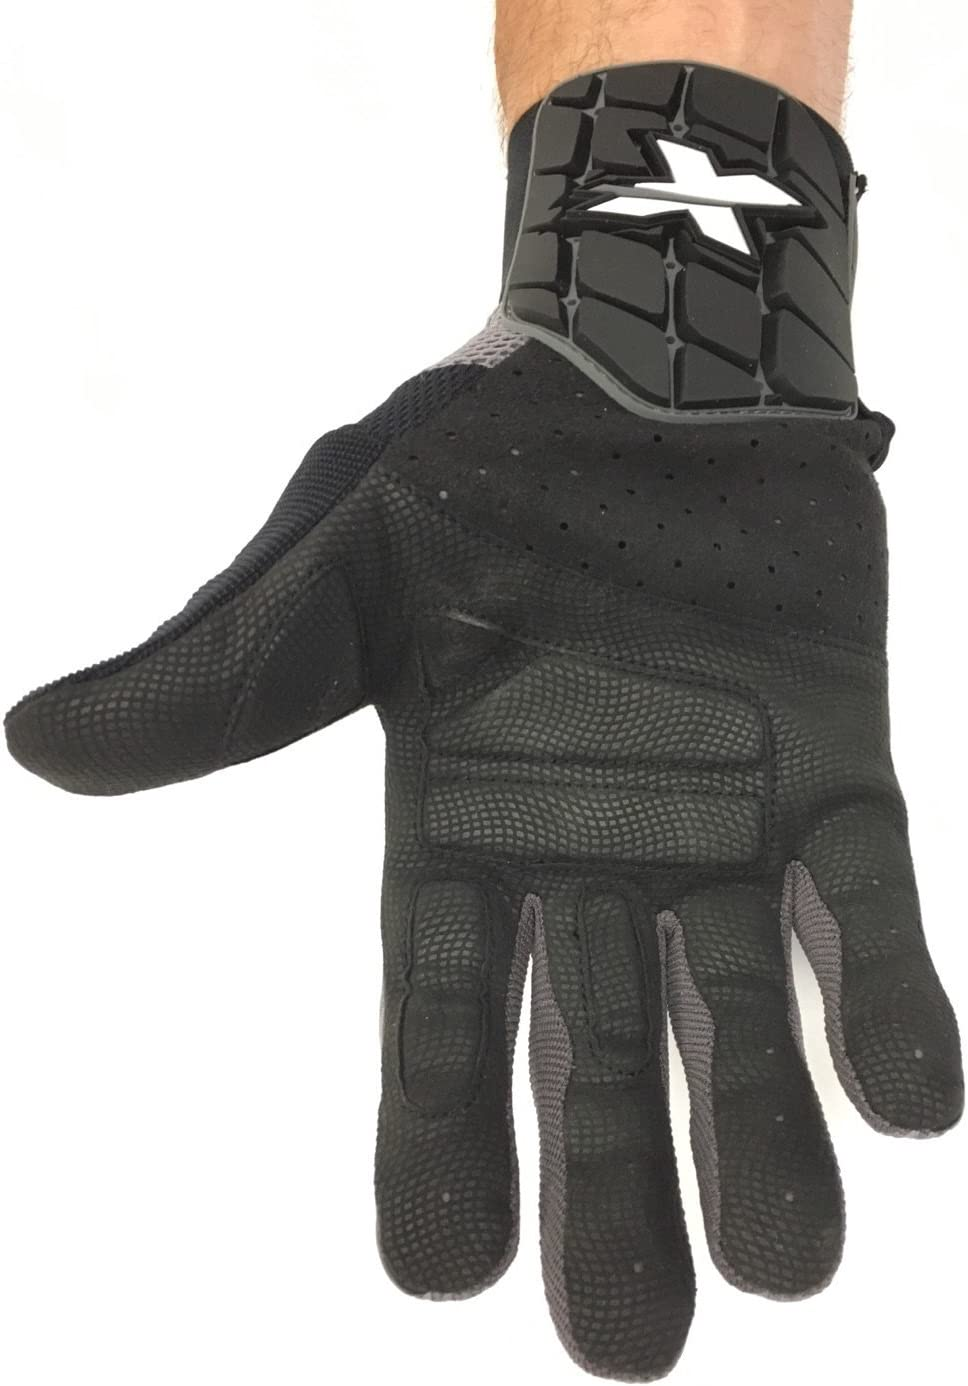 Xprotex Fashion 17 Reaktr Free shipping New Glove Hand Right